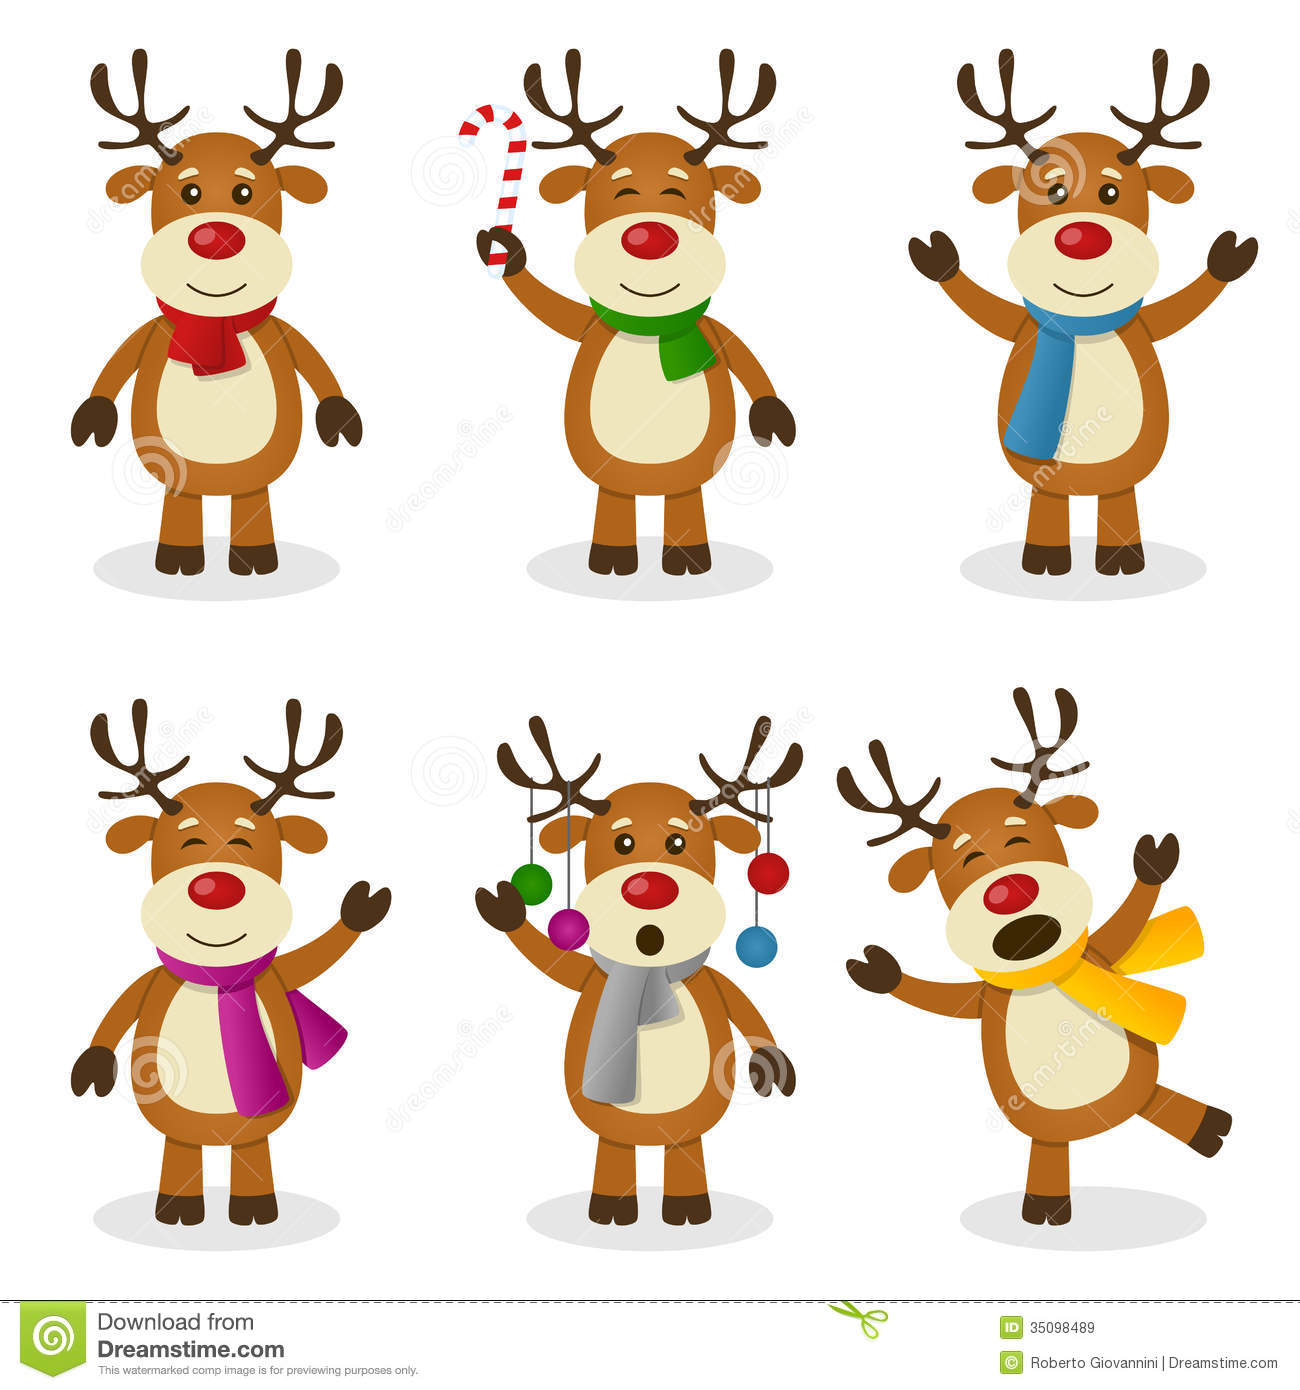 Reindeer Cartoon Christmas Set Royalty Free Stock Images   Image